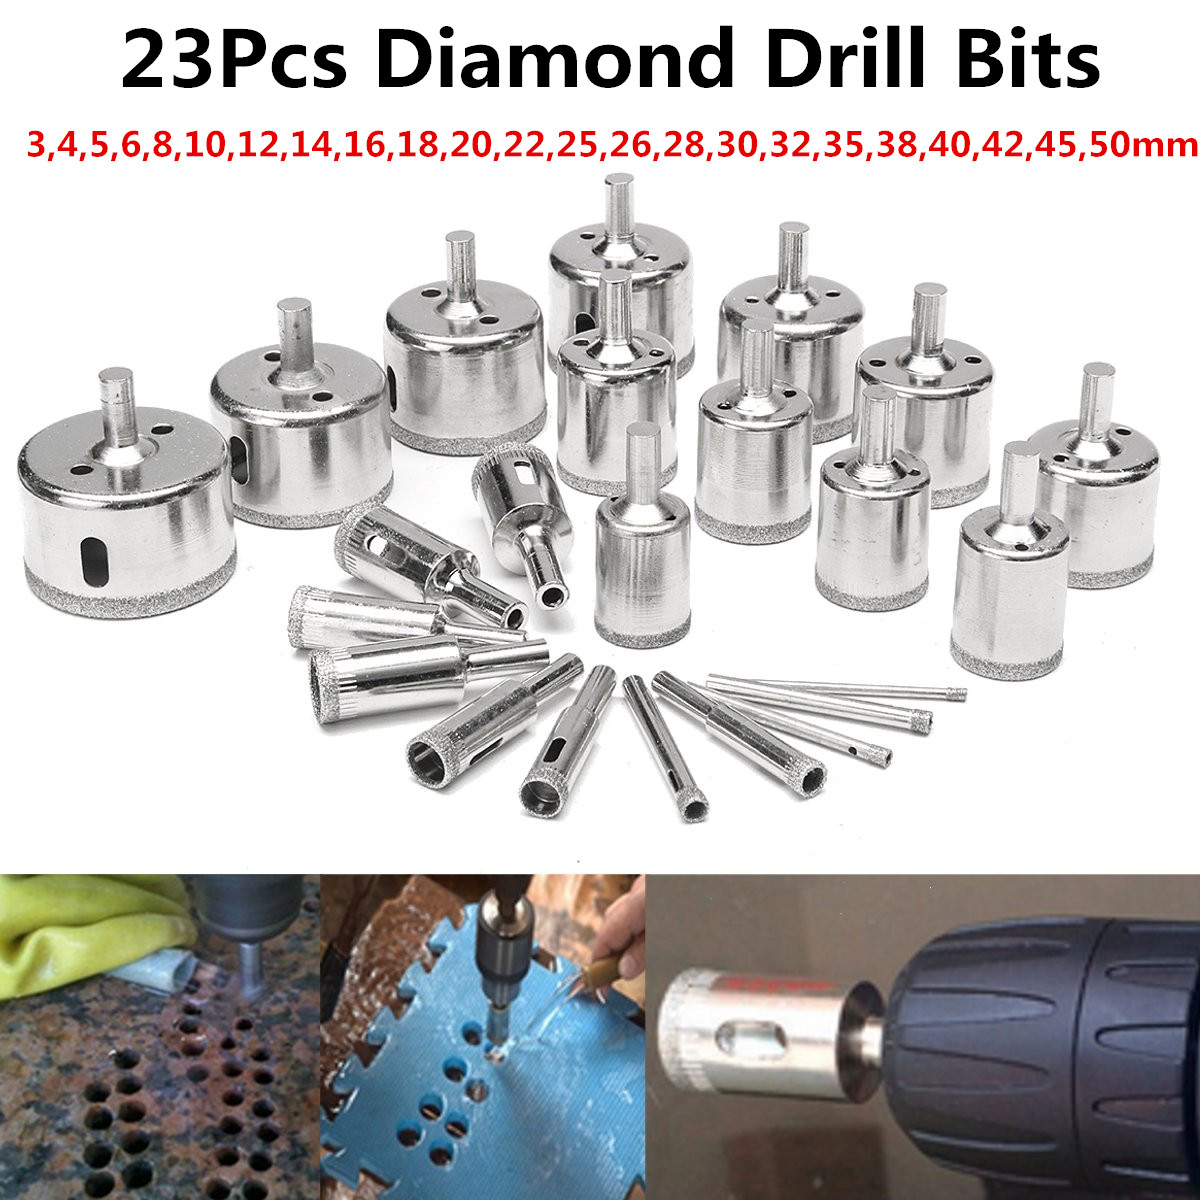 3 Pcs 40mm Diamond Drill Bits Set Hole Saw Tool Glass Ceramic Granite Marble